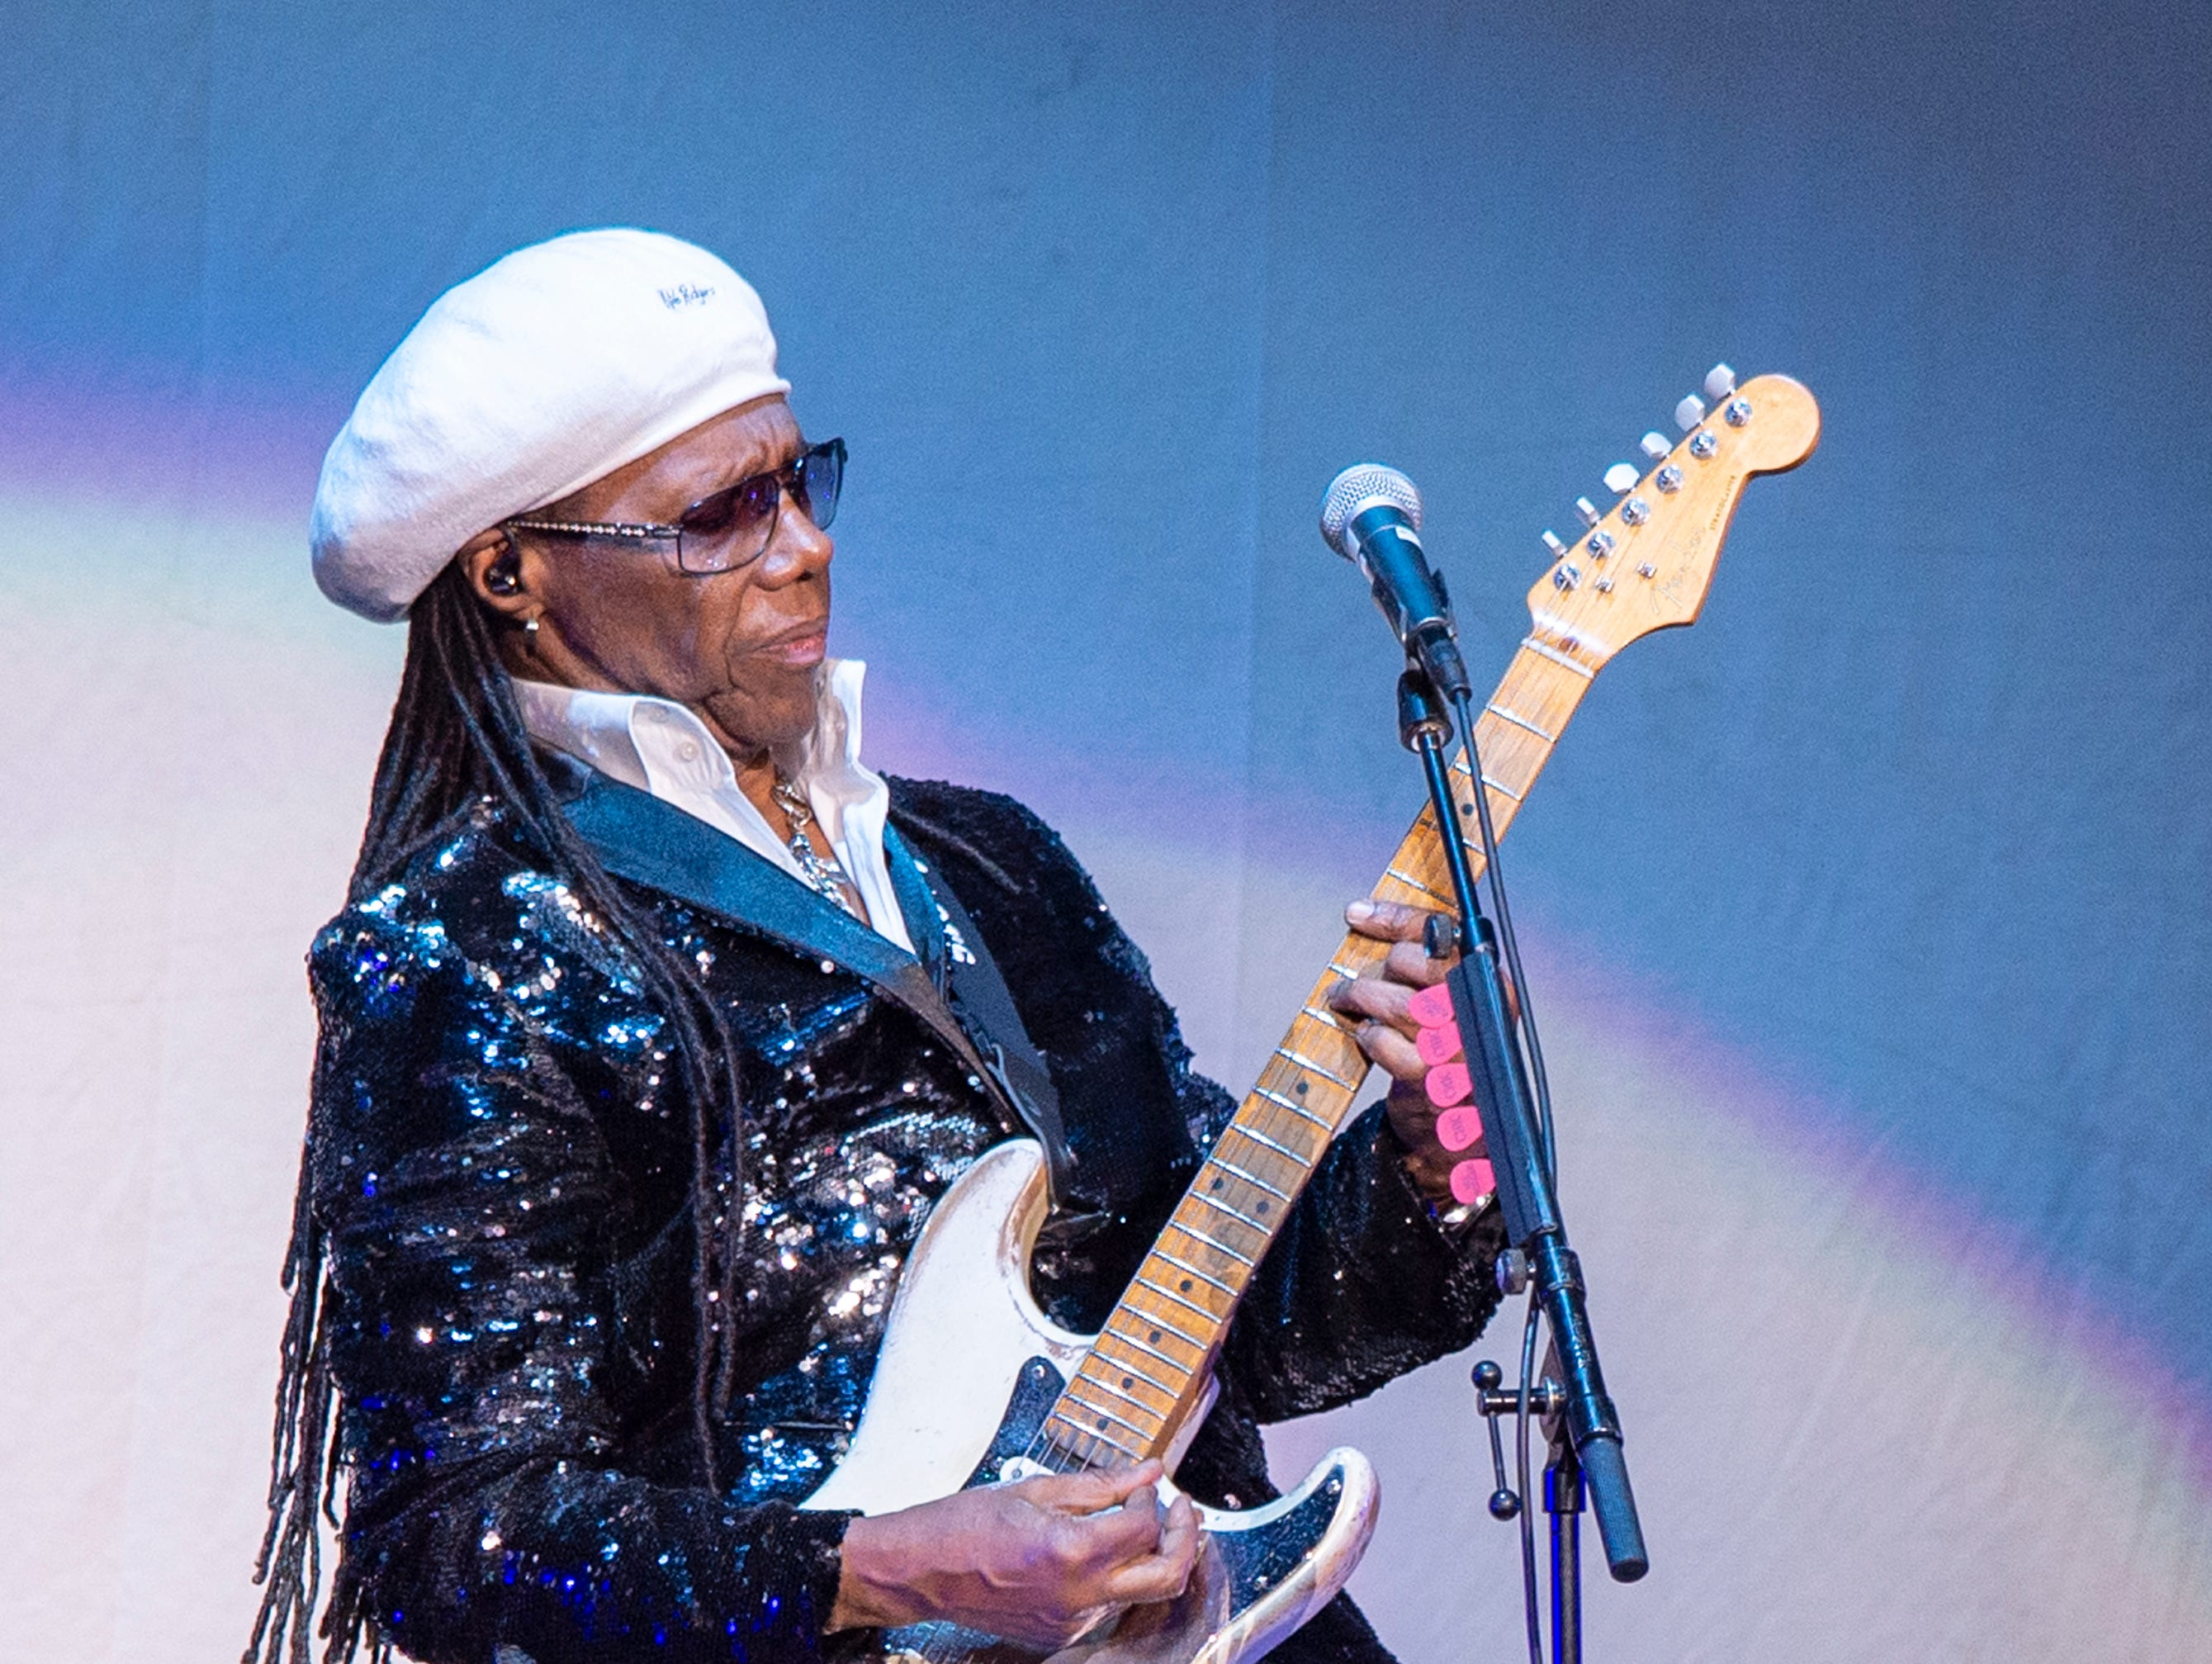 """Nile Rodgers & CHIC opened the evening for Cher's """"Here We Go Again"""" tour at Bankers Life Fieldhouse in Indianapolis, Thursday, Feb. 14, 2019."""